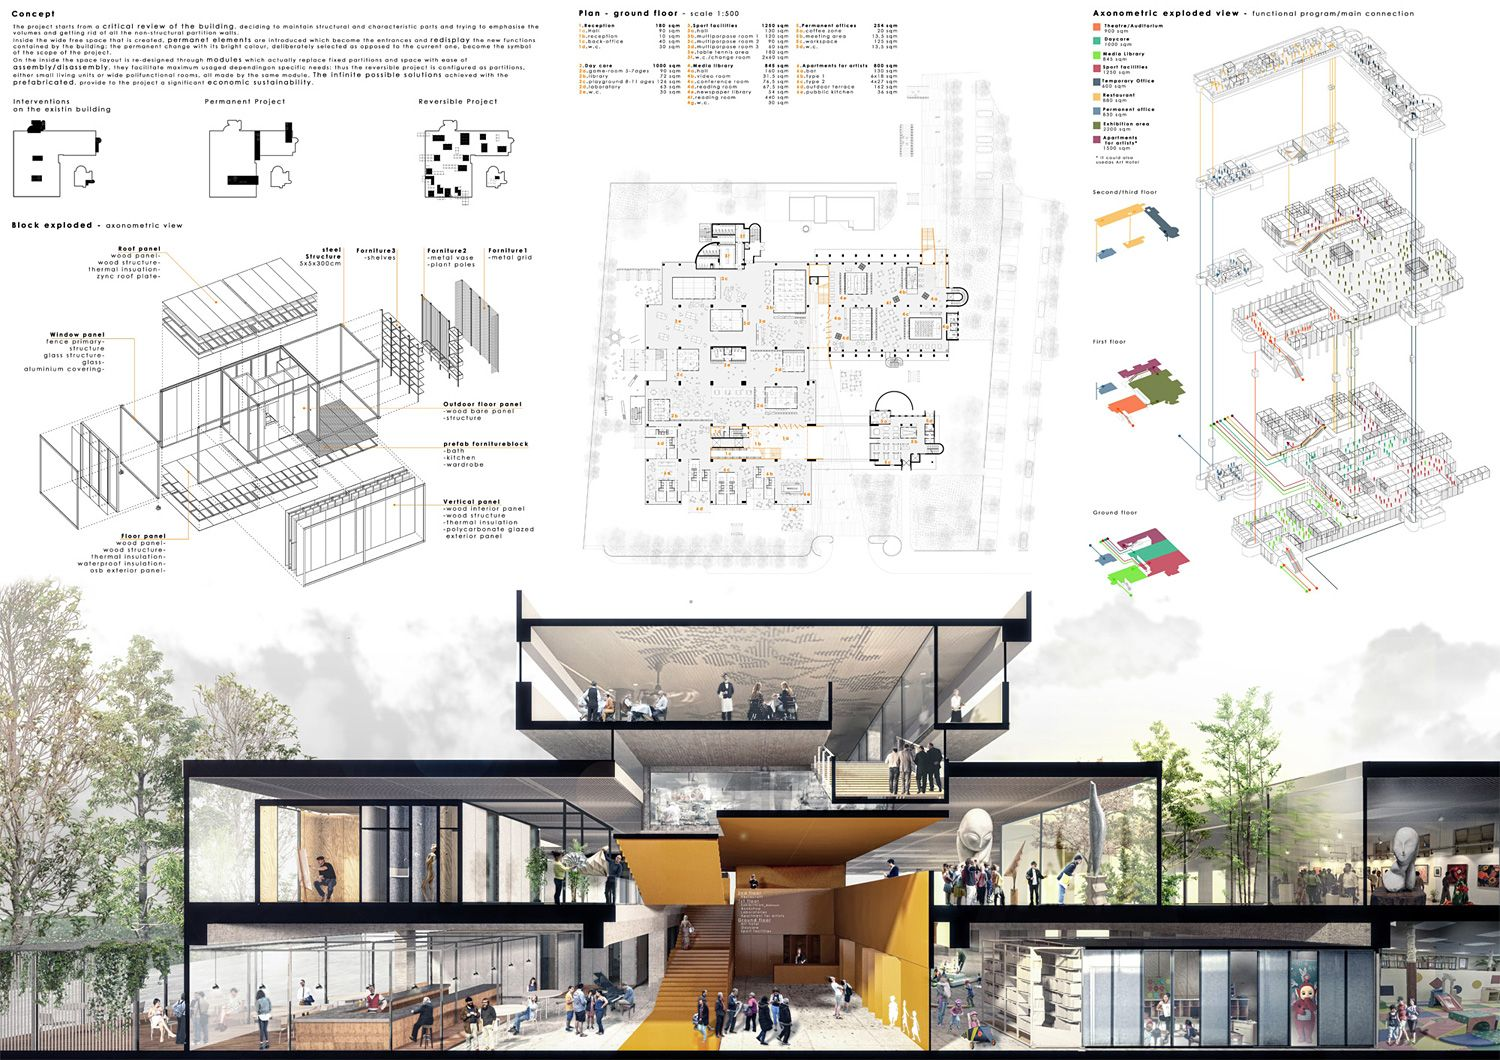 10 Tips For Creating Stunning Architecture Project Presentation - Arch2O.com